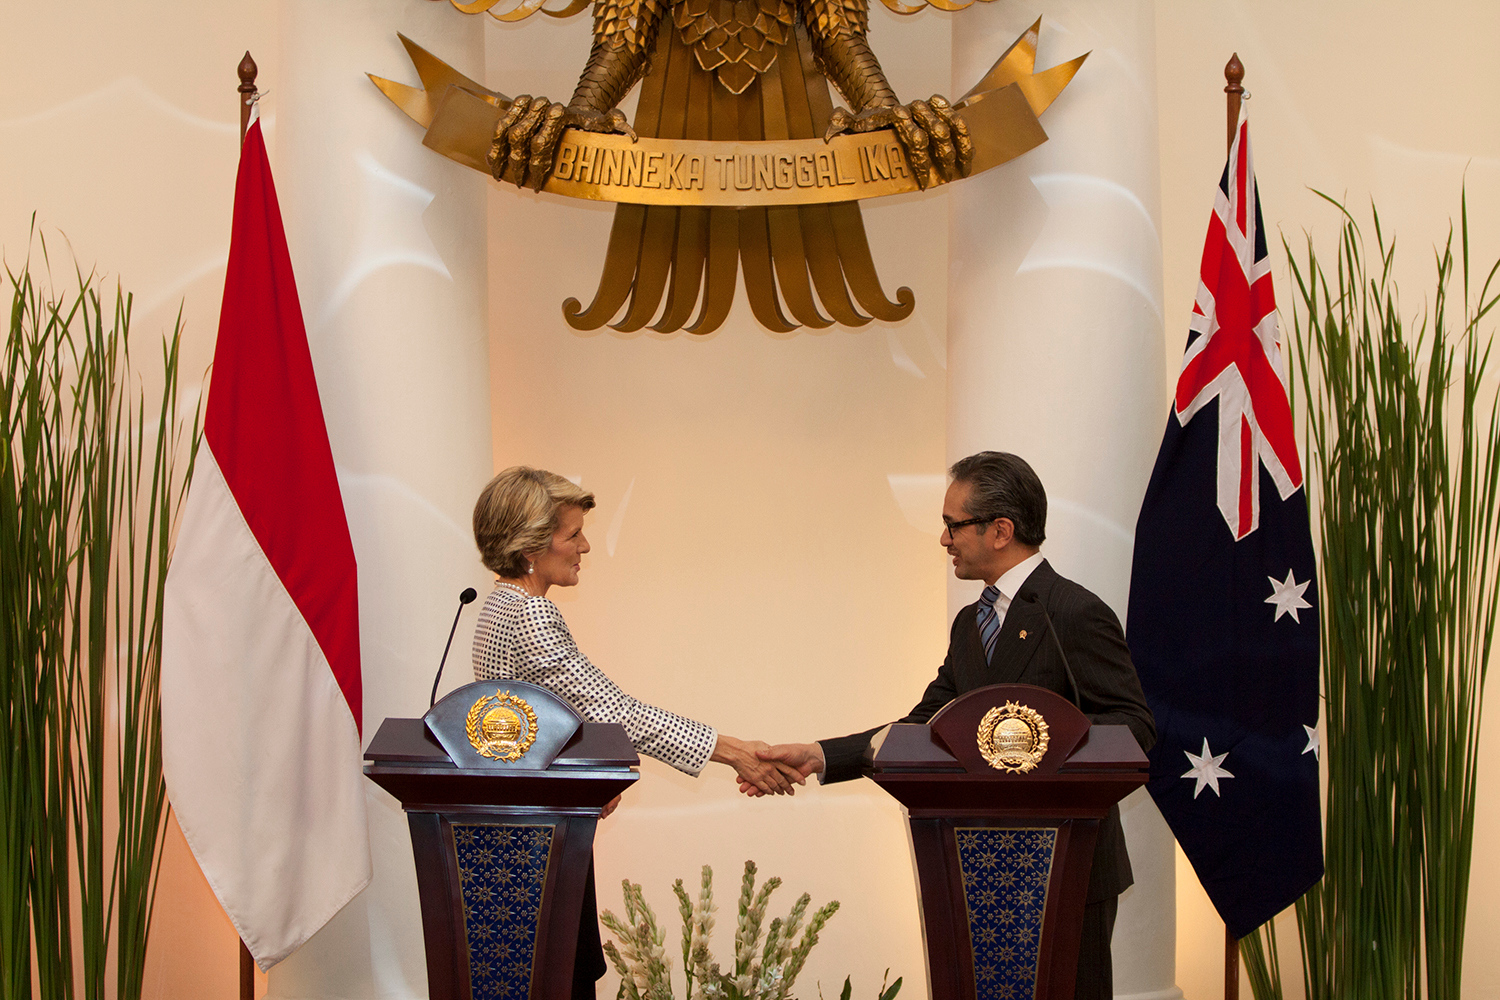 Foreign Minister Julie Bishop and Indonesian Foreign Minister Dr Marty Natalegawa hold a media conference at Gedung Pancasila in Jakarta, 5 December 2013